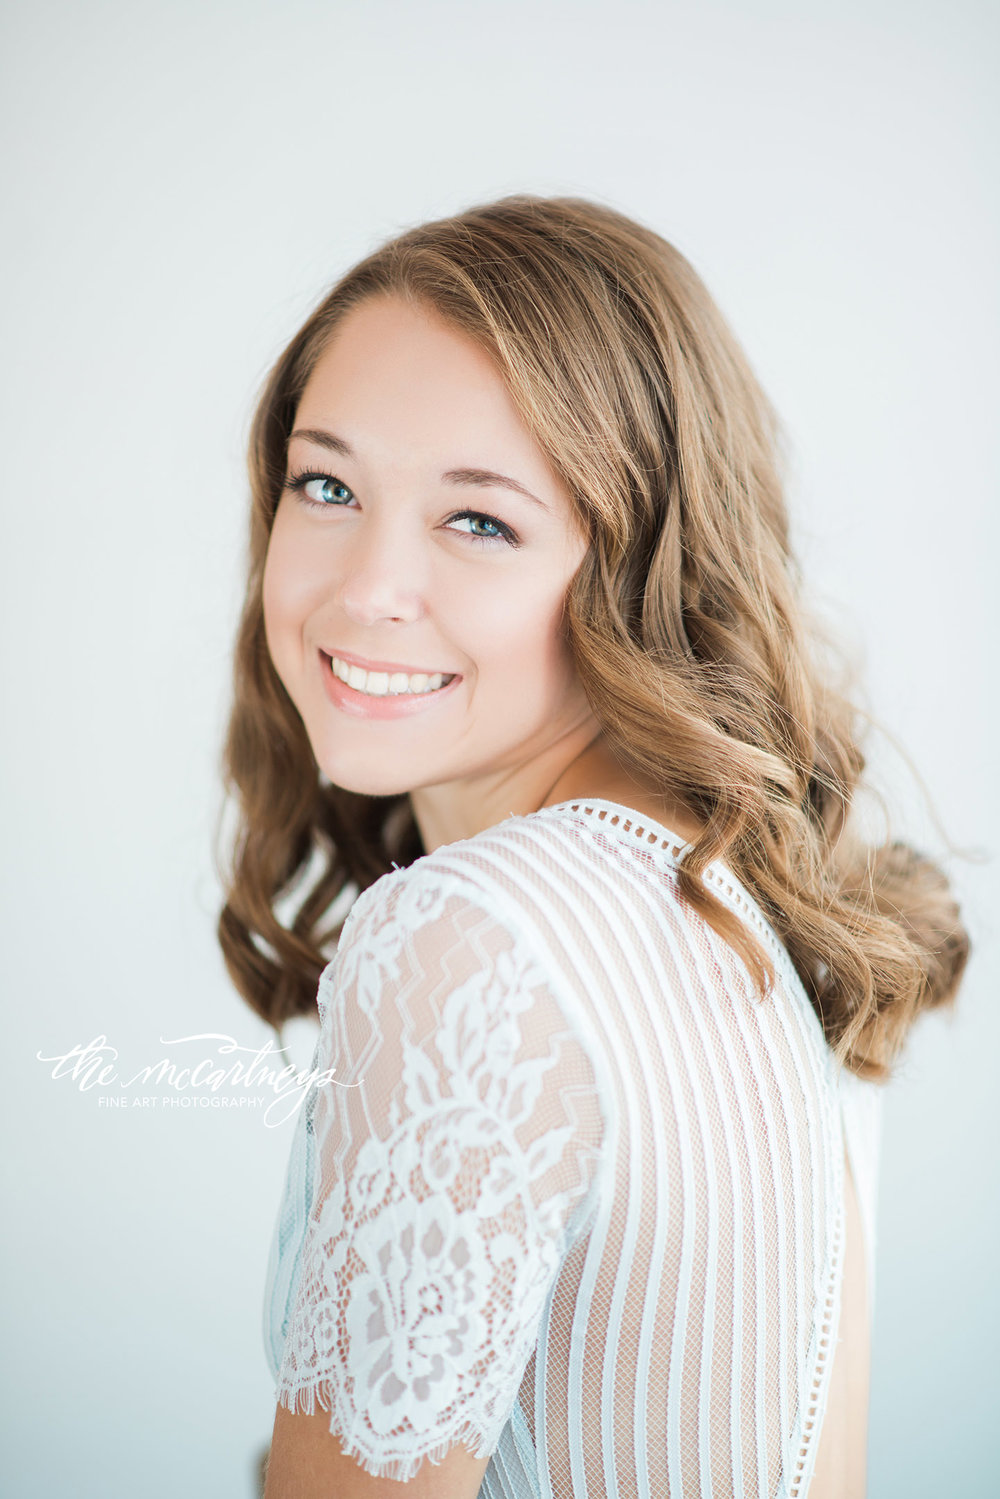 Wausau-Senior-Photographer-019.JPG